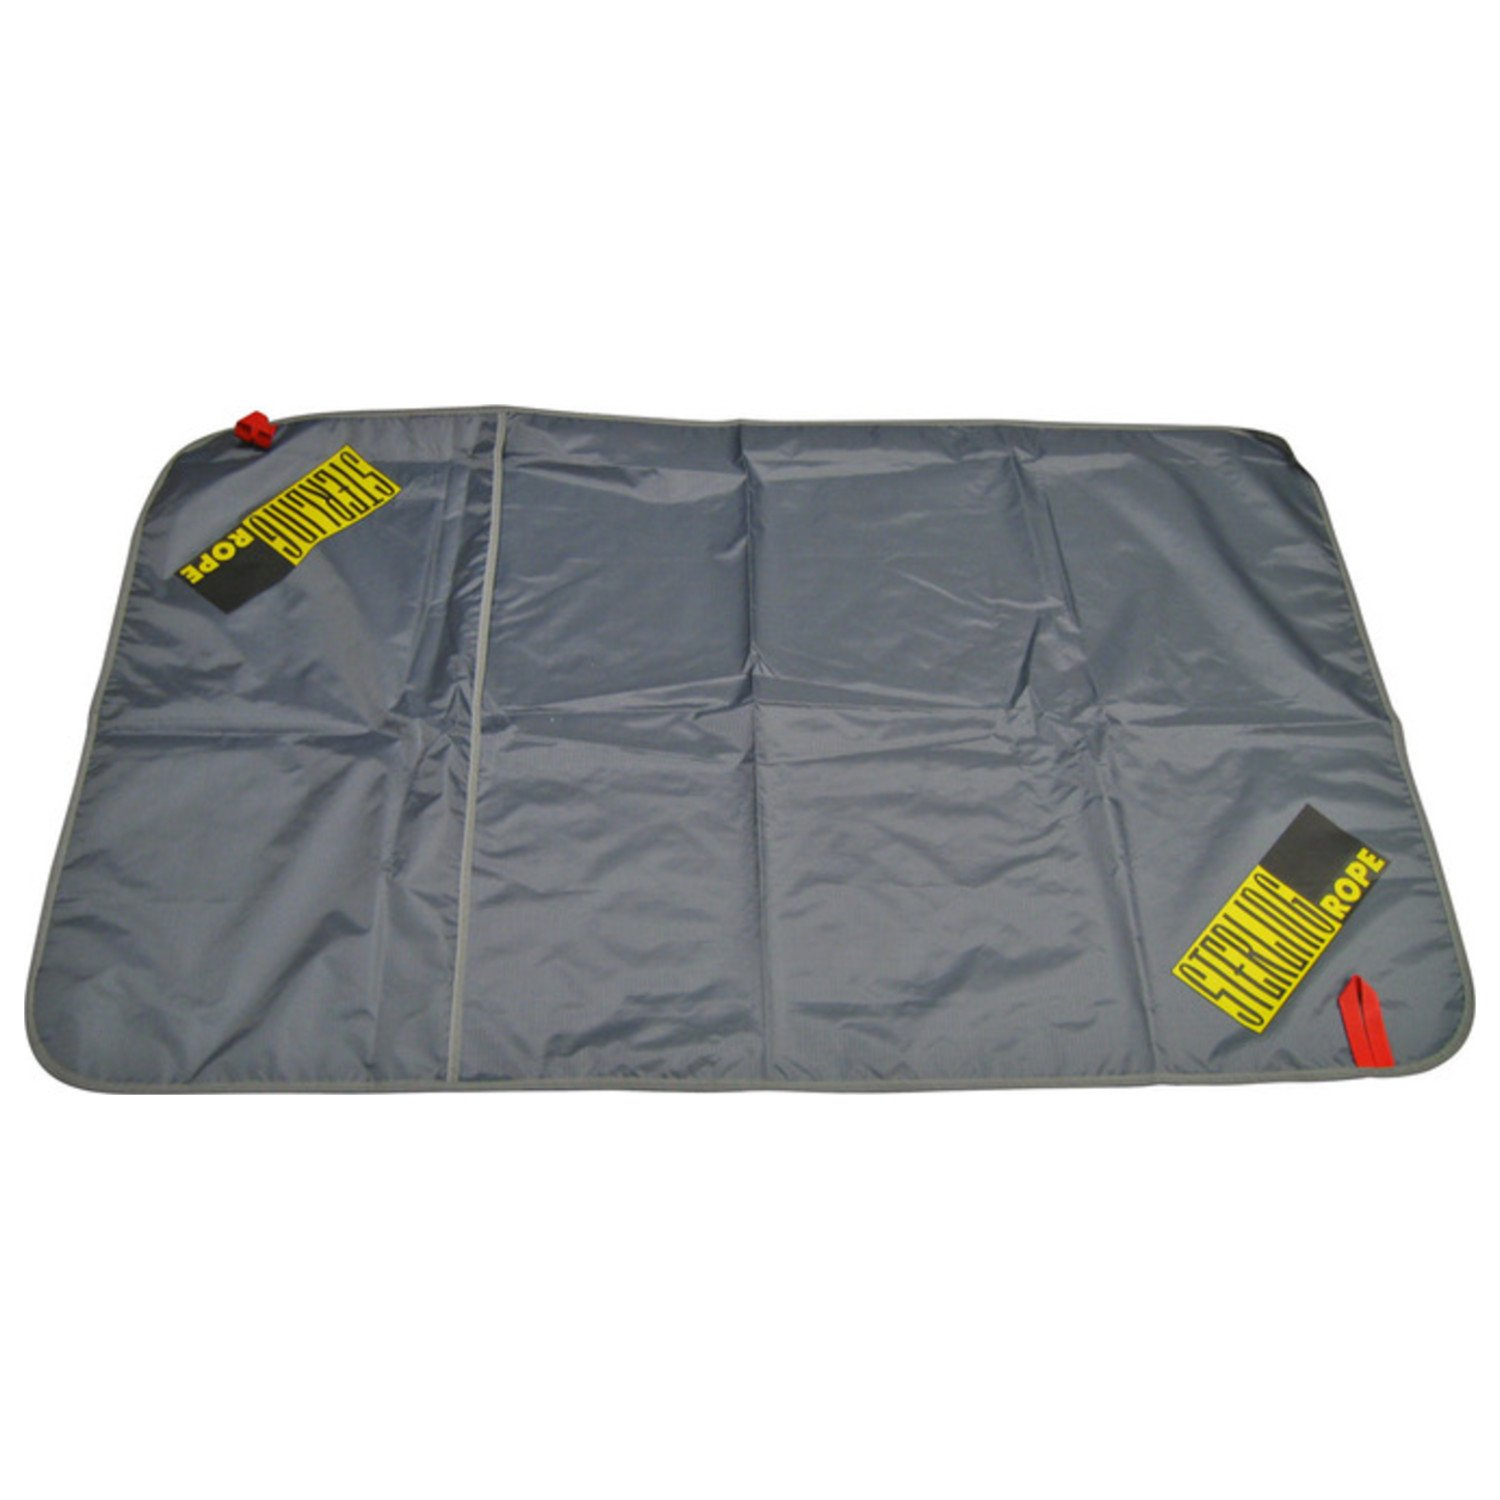 Sterling Rope Rope Tarp Plus with Pocket 54IN x 36IN